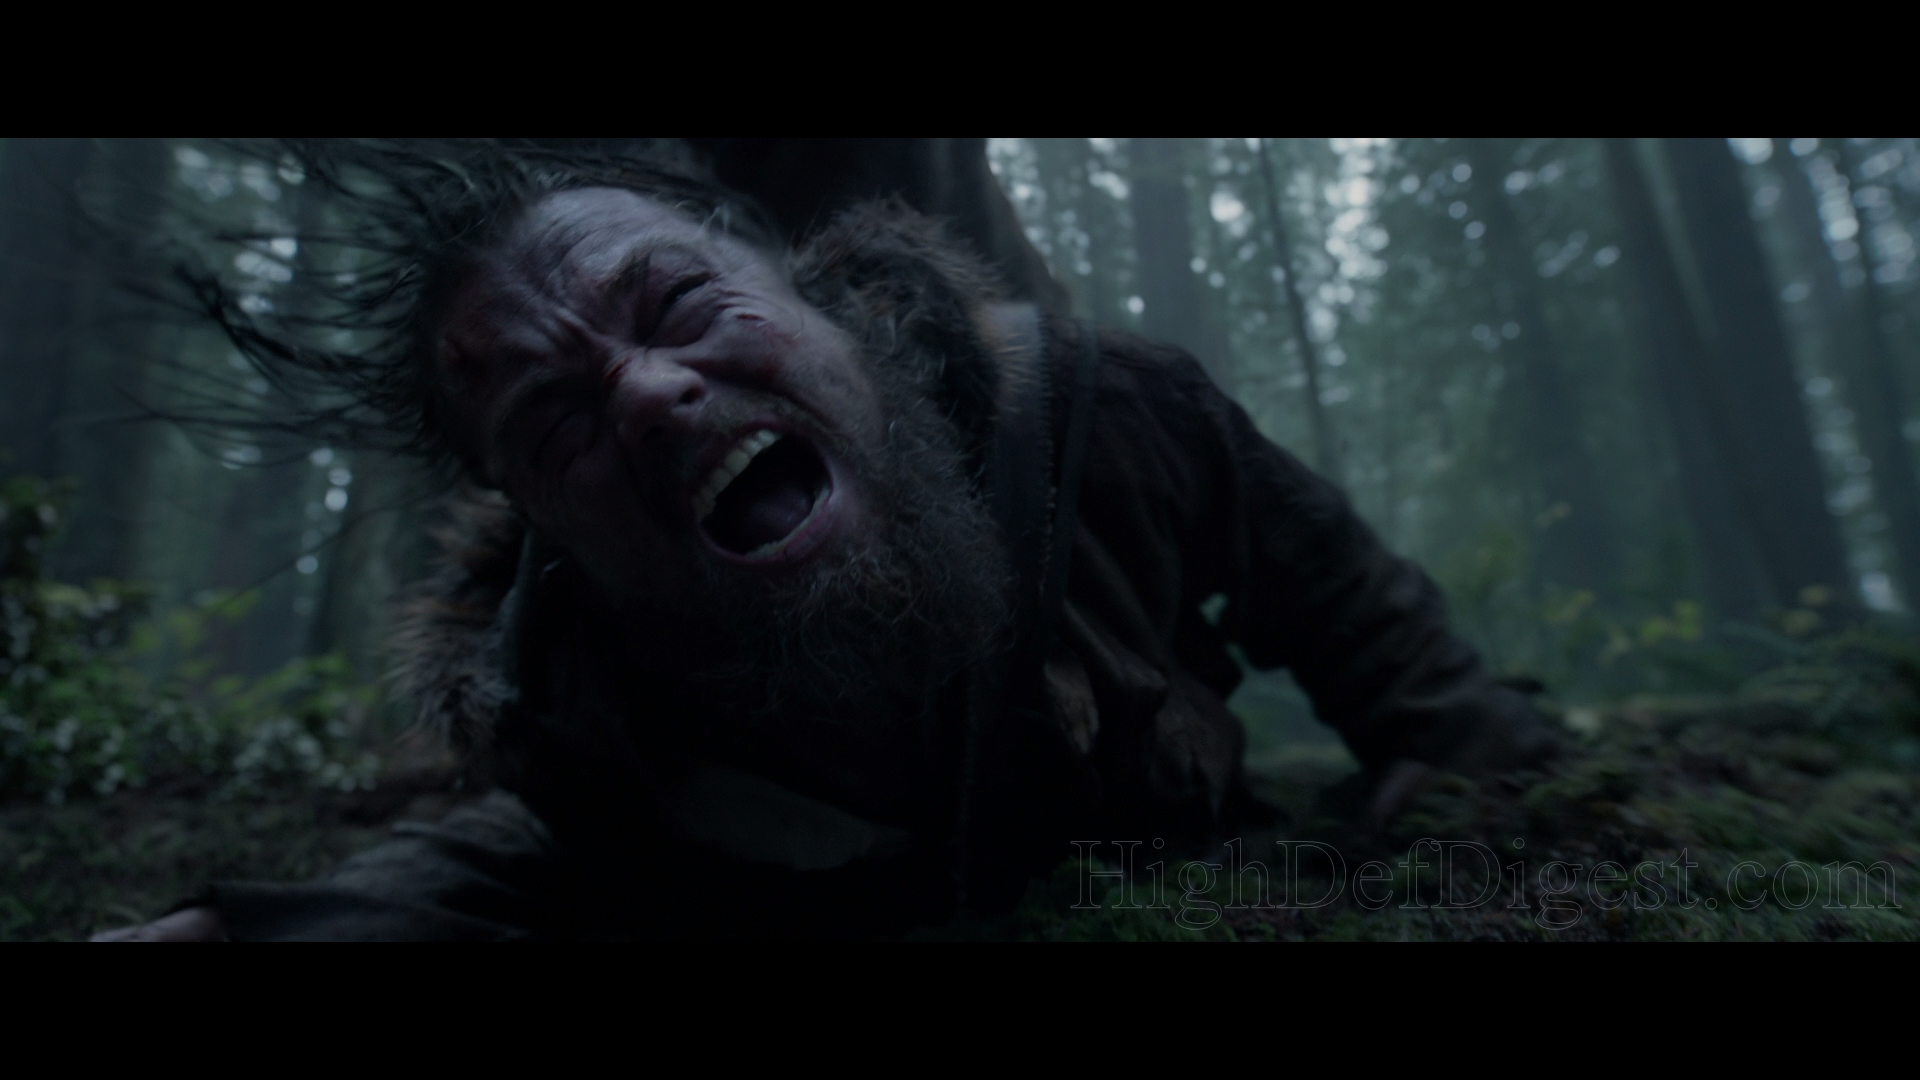 This is some of DiCaprio's best work, as he embodies the tortured character of Hugh Glass and exposes the personal demons that are slowly revealed ...